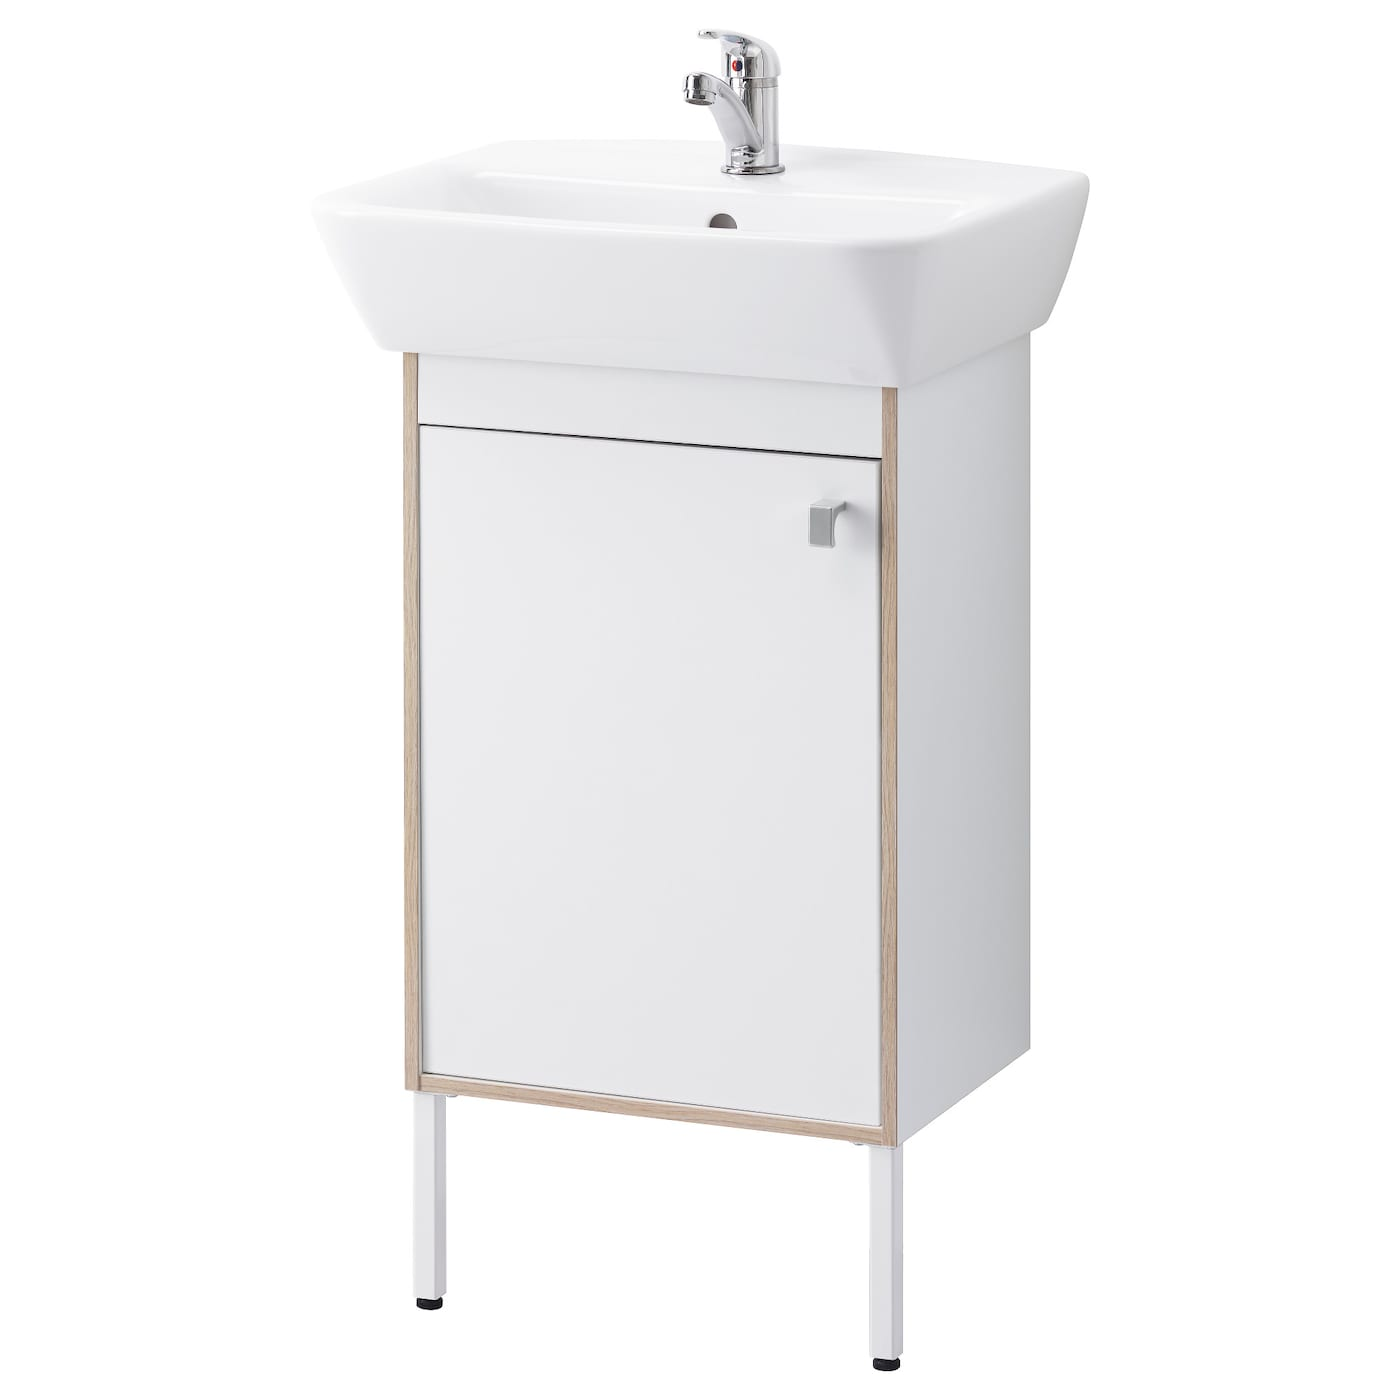 small bathroom sinks ikea tyngen washbasin cabinet with 1 door white 51x40x88 cm ikea 20500